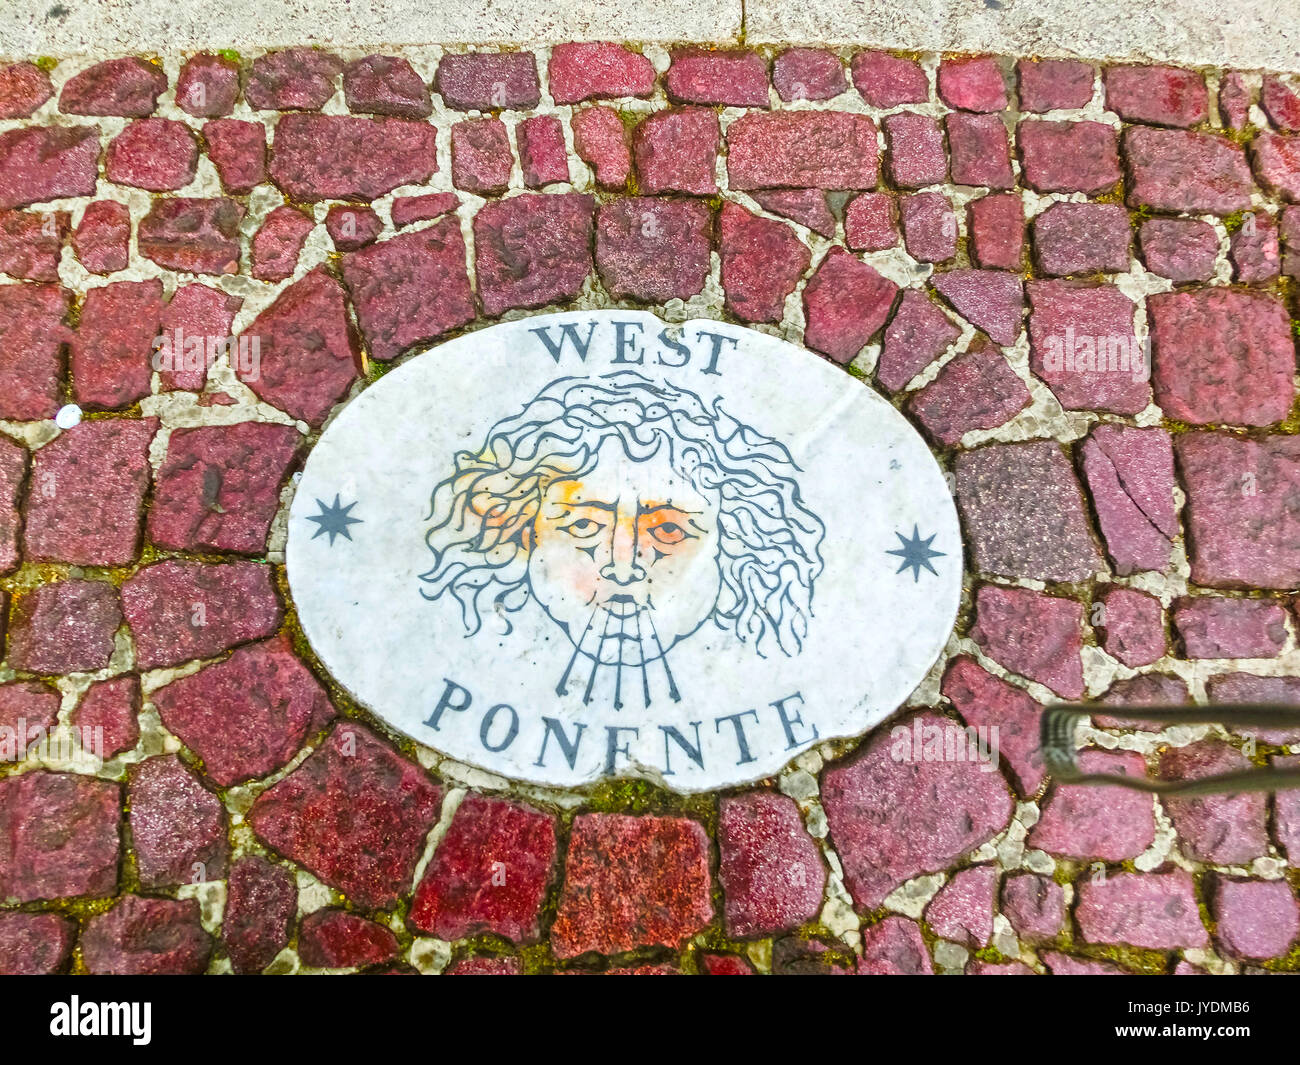 Vatican city - May 02, 2014: A stone laid in St Peter's Square at Vatican City, by Bernini points in the direction - Stock Image